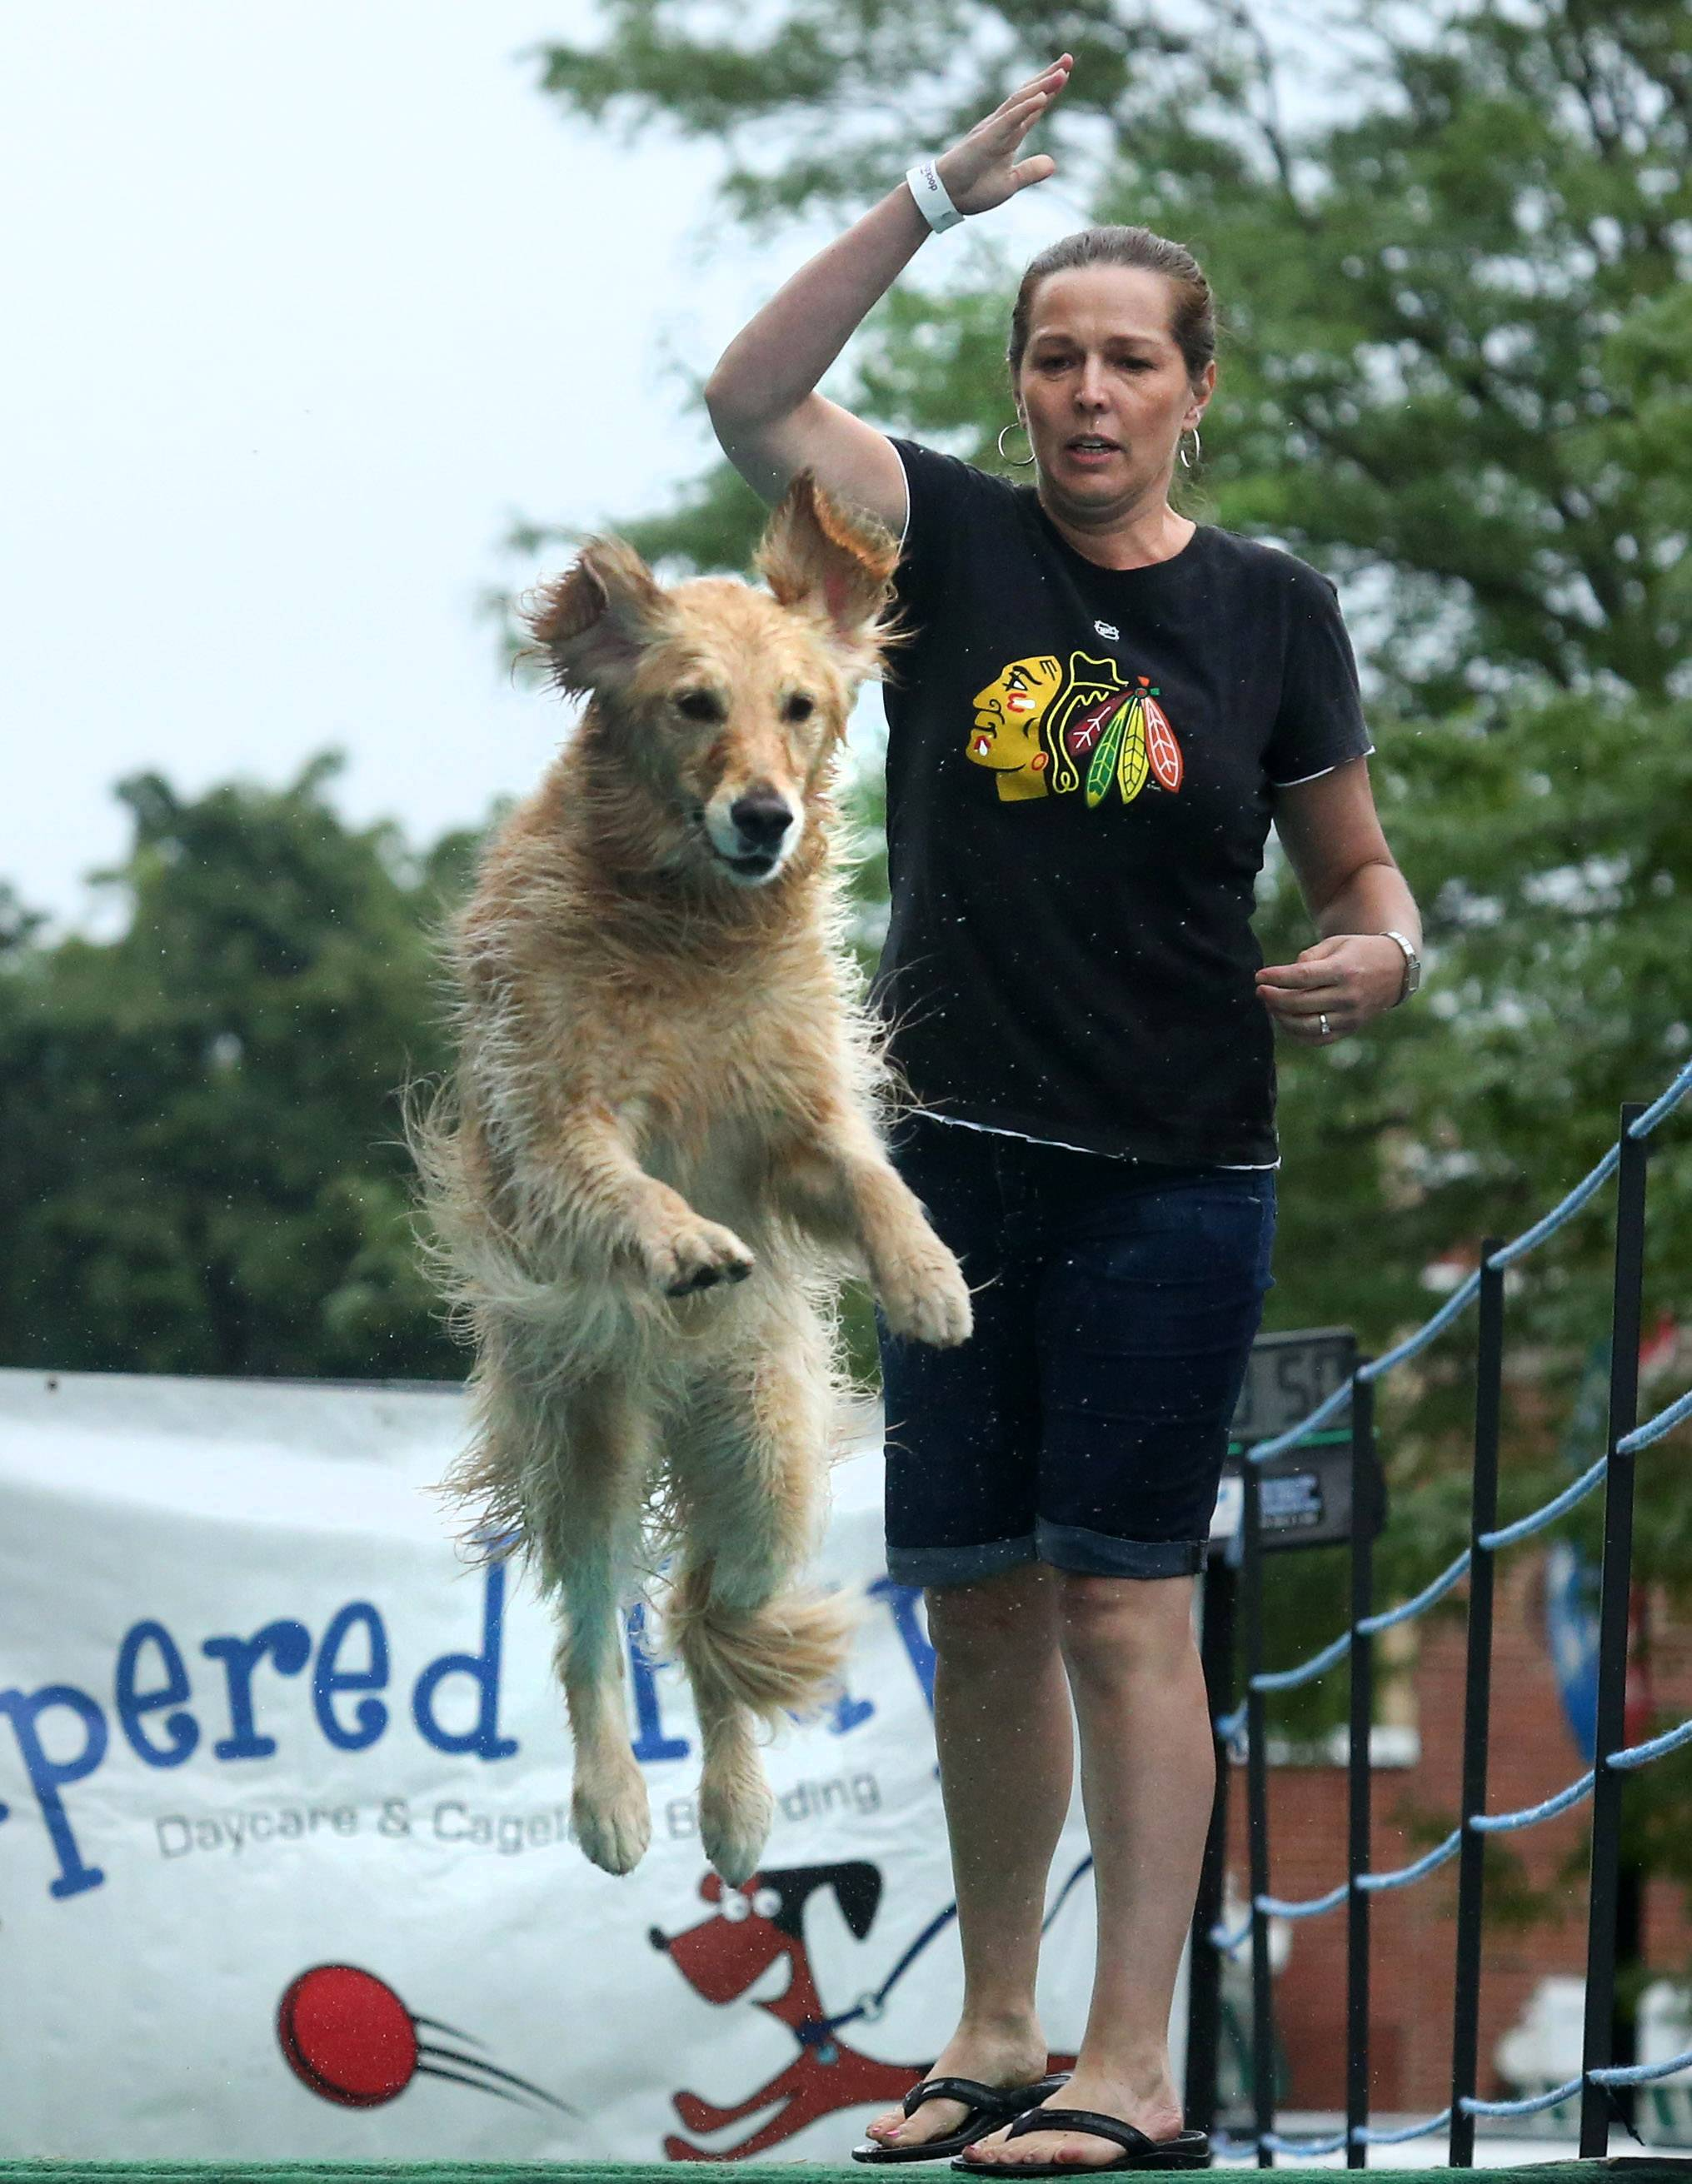 Tania Kothera of Schaumburg competes with her son Nate's golden retriever, Chevy, 3, in the DockDogs Big Air Dog Jumping event Friday  during Pampered Pup'z Dog Days of Summer in Libertyville. The contest resumes at 10 a.m. today.